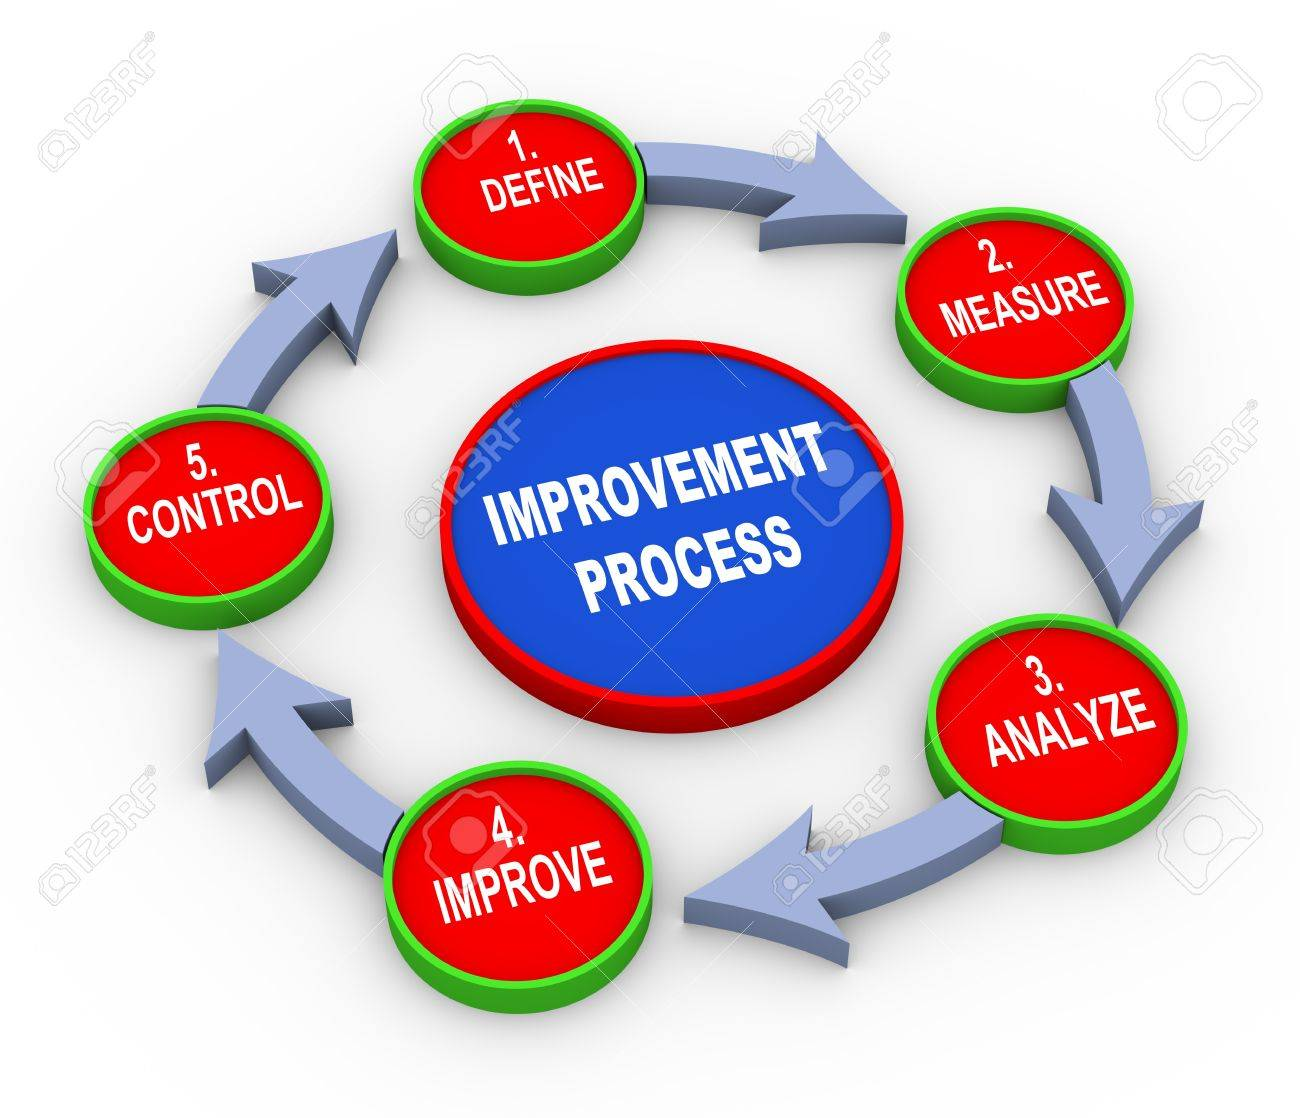 hight resolution of 3d illustration of concept of improvement process flow chart stock illustration 21325287